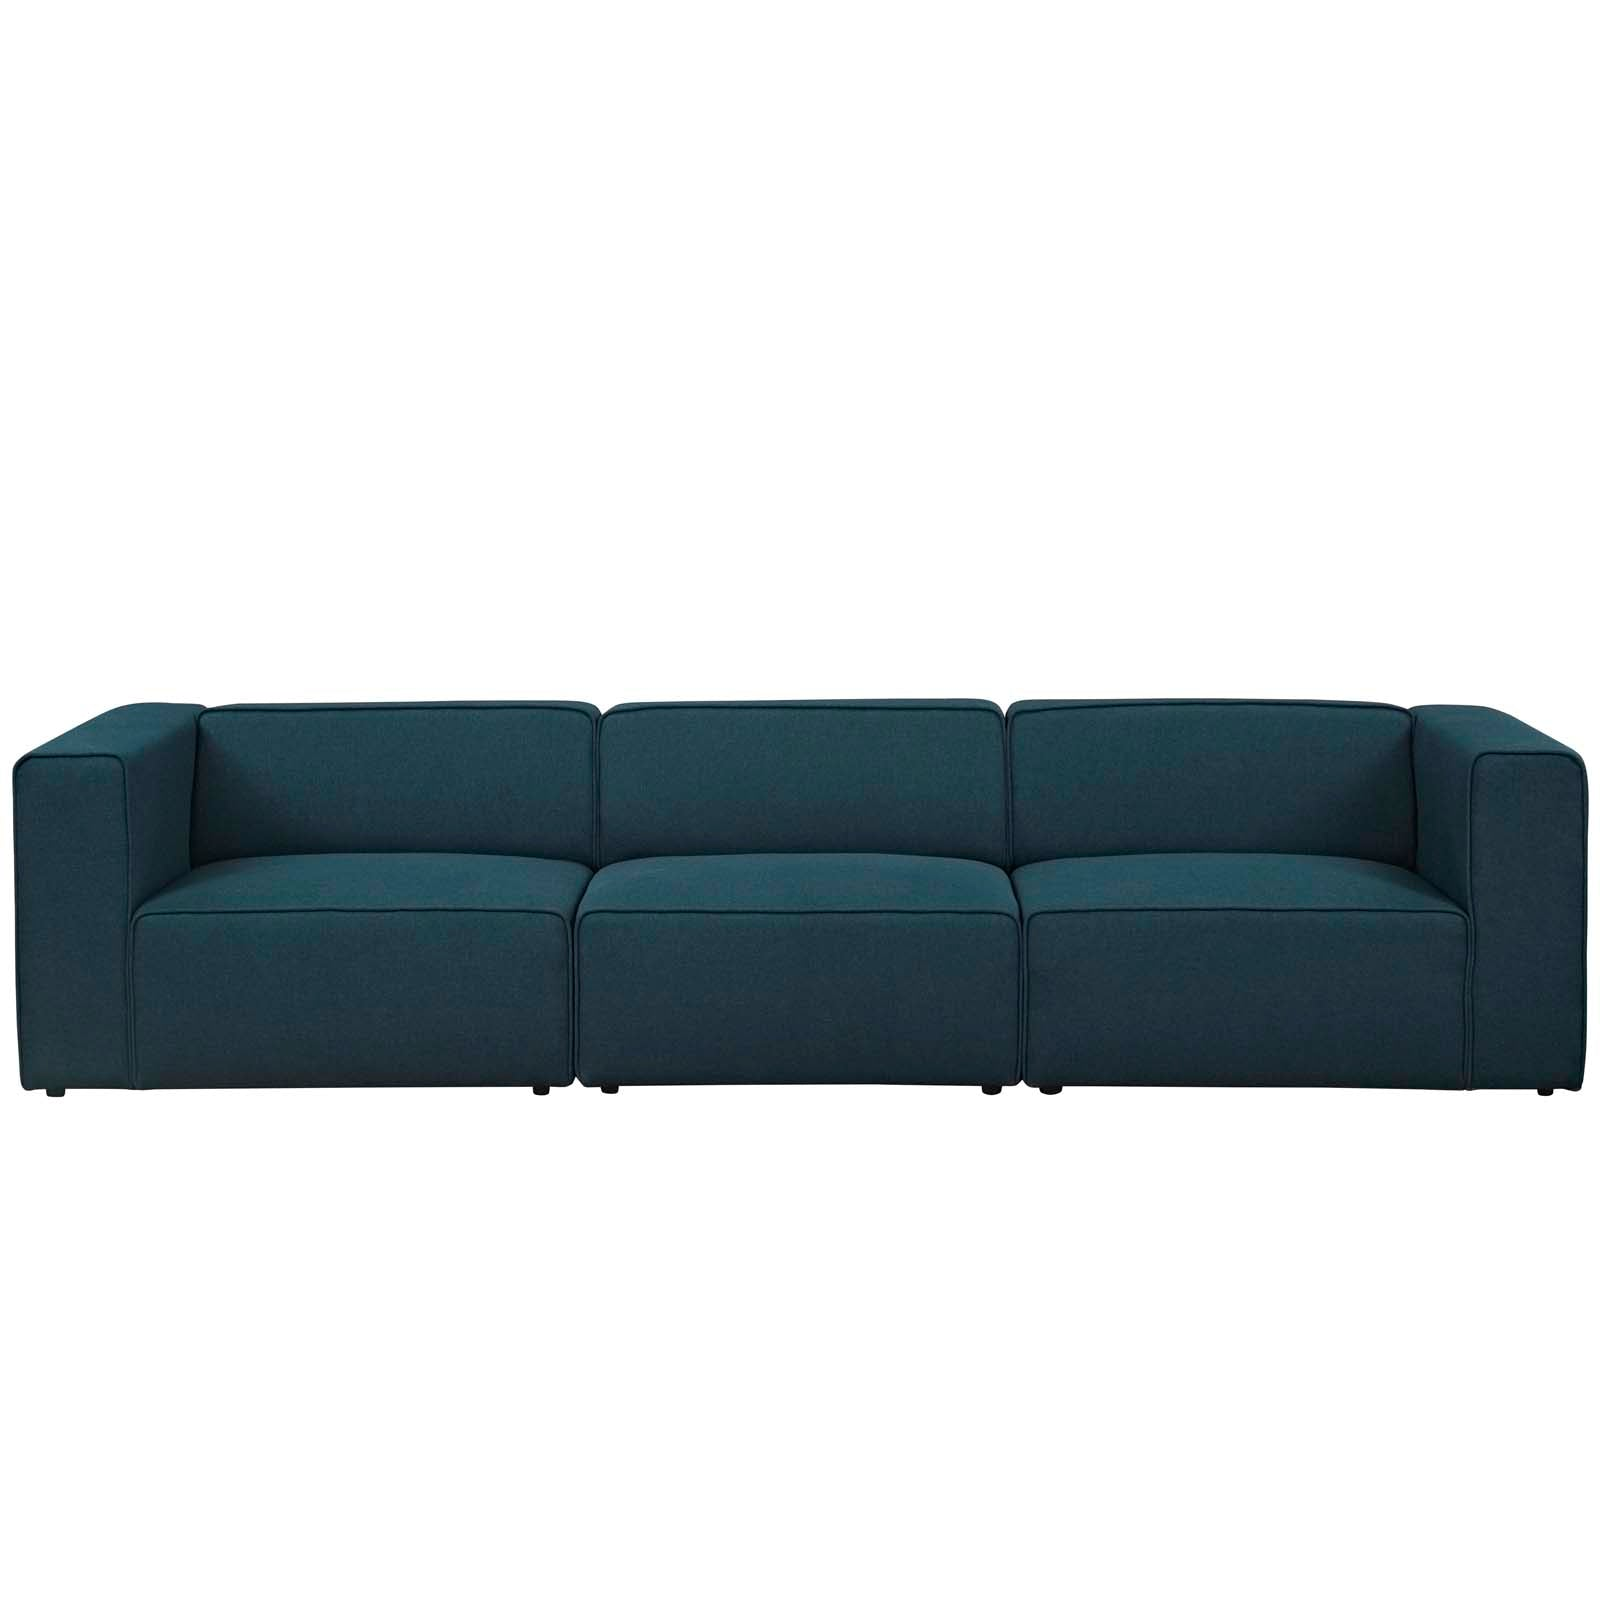 Mingle 3-Piece Sofa